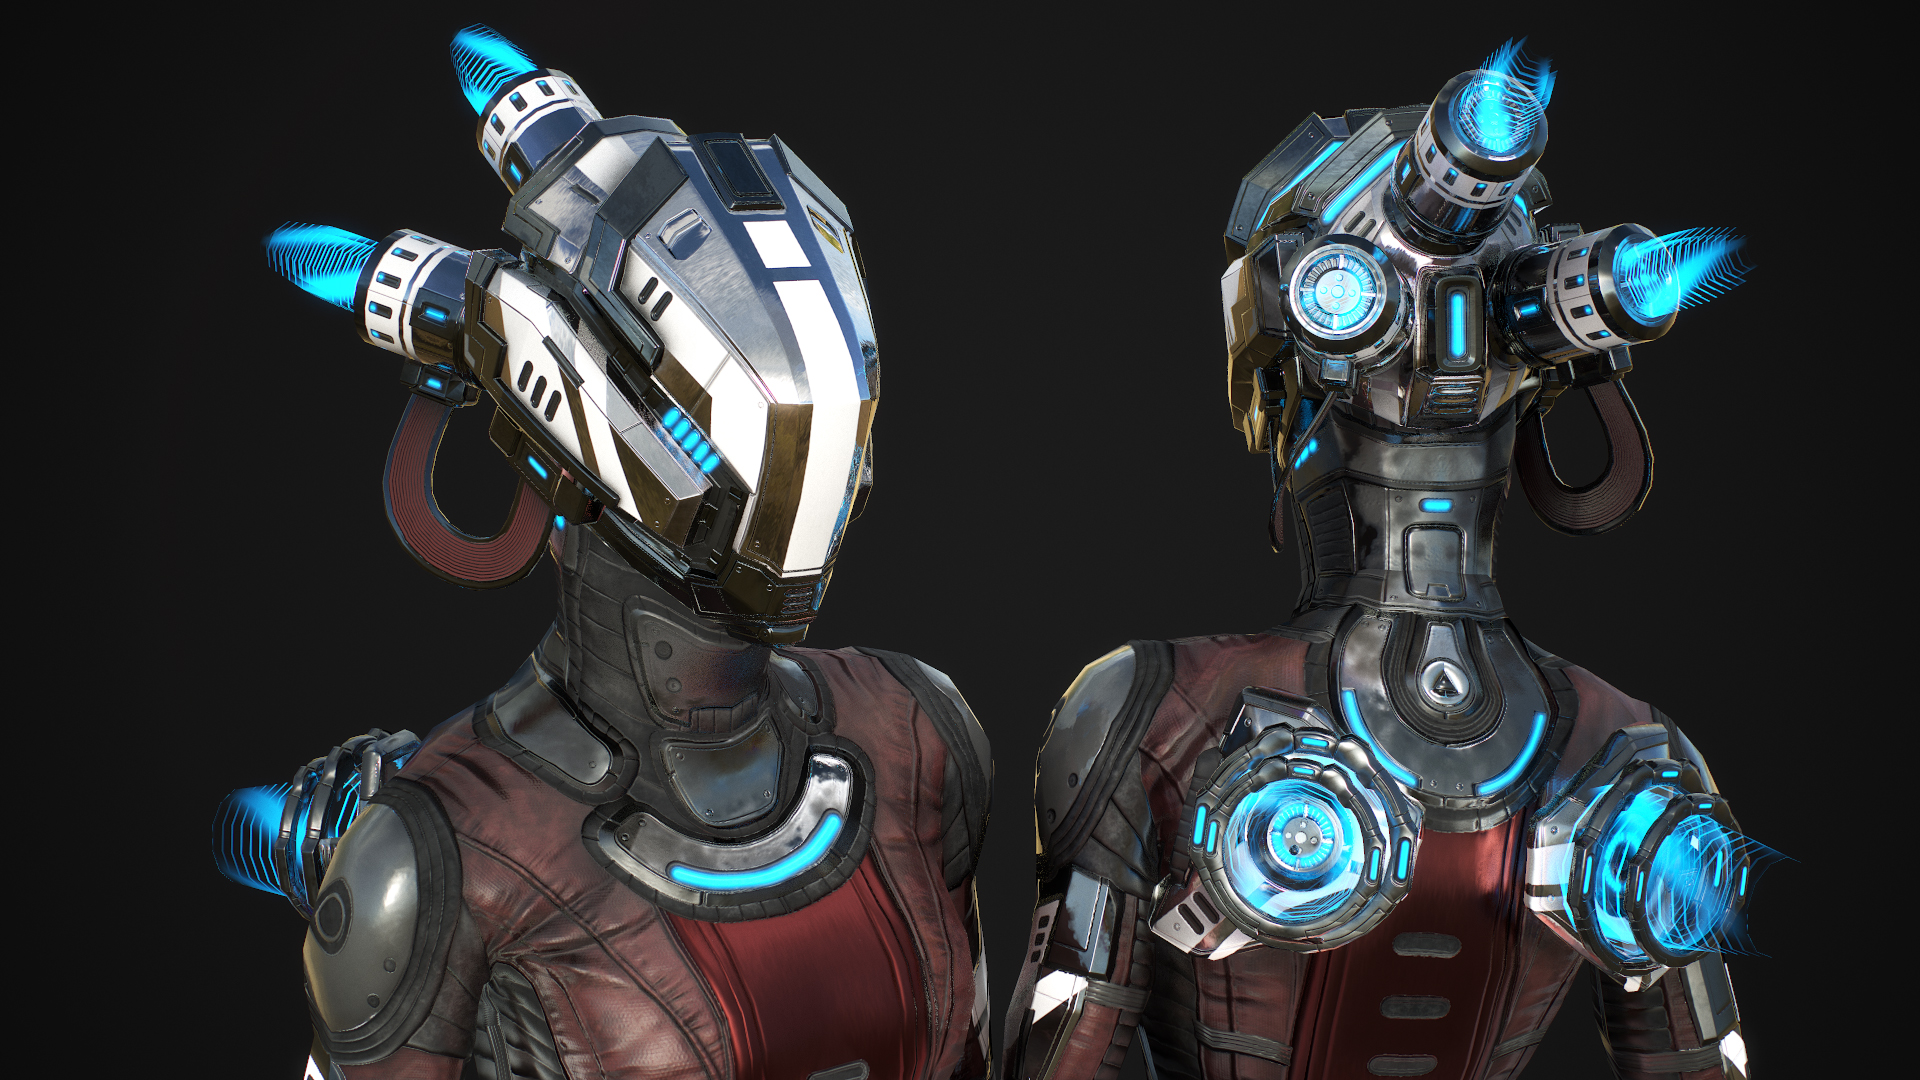 Steam Workshop Corpra Nova Nova is one of a kind and can do things no other warframe can. steam workshop corpra nova